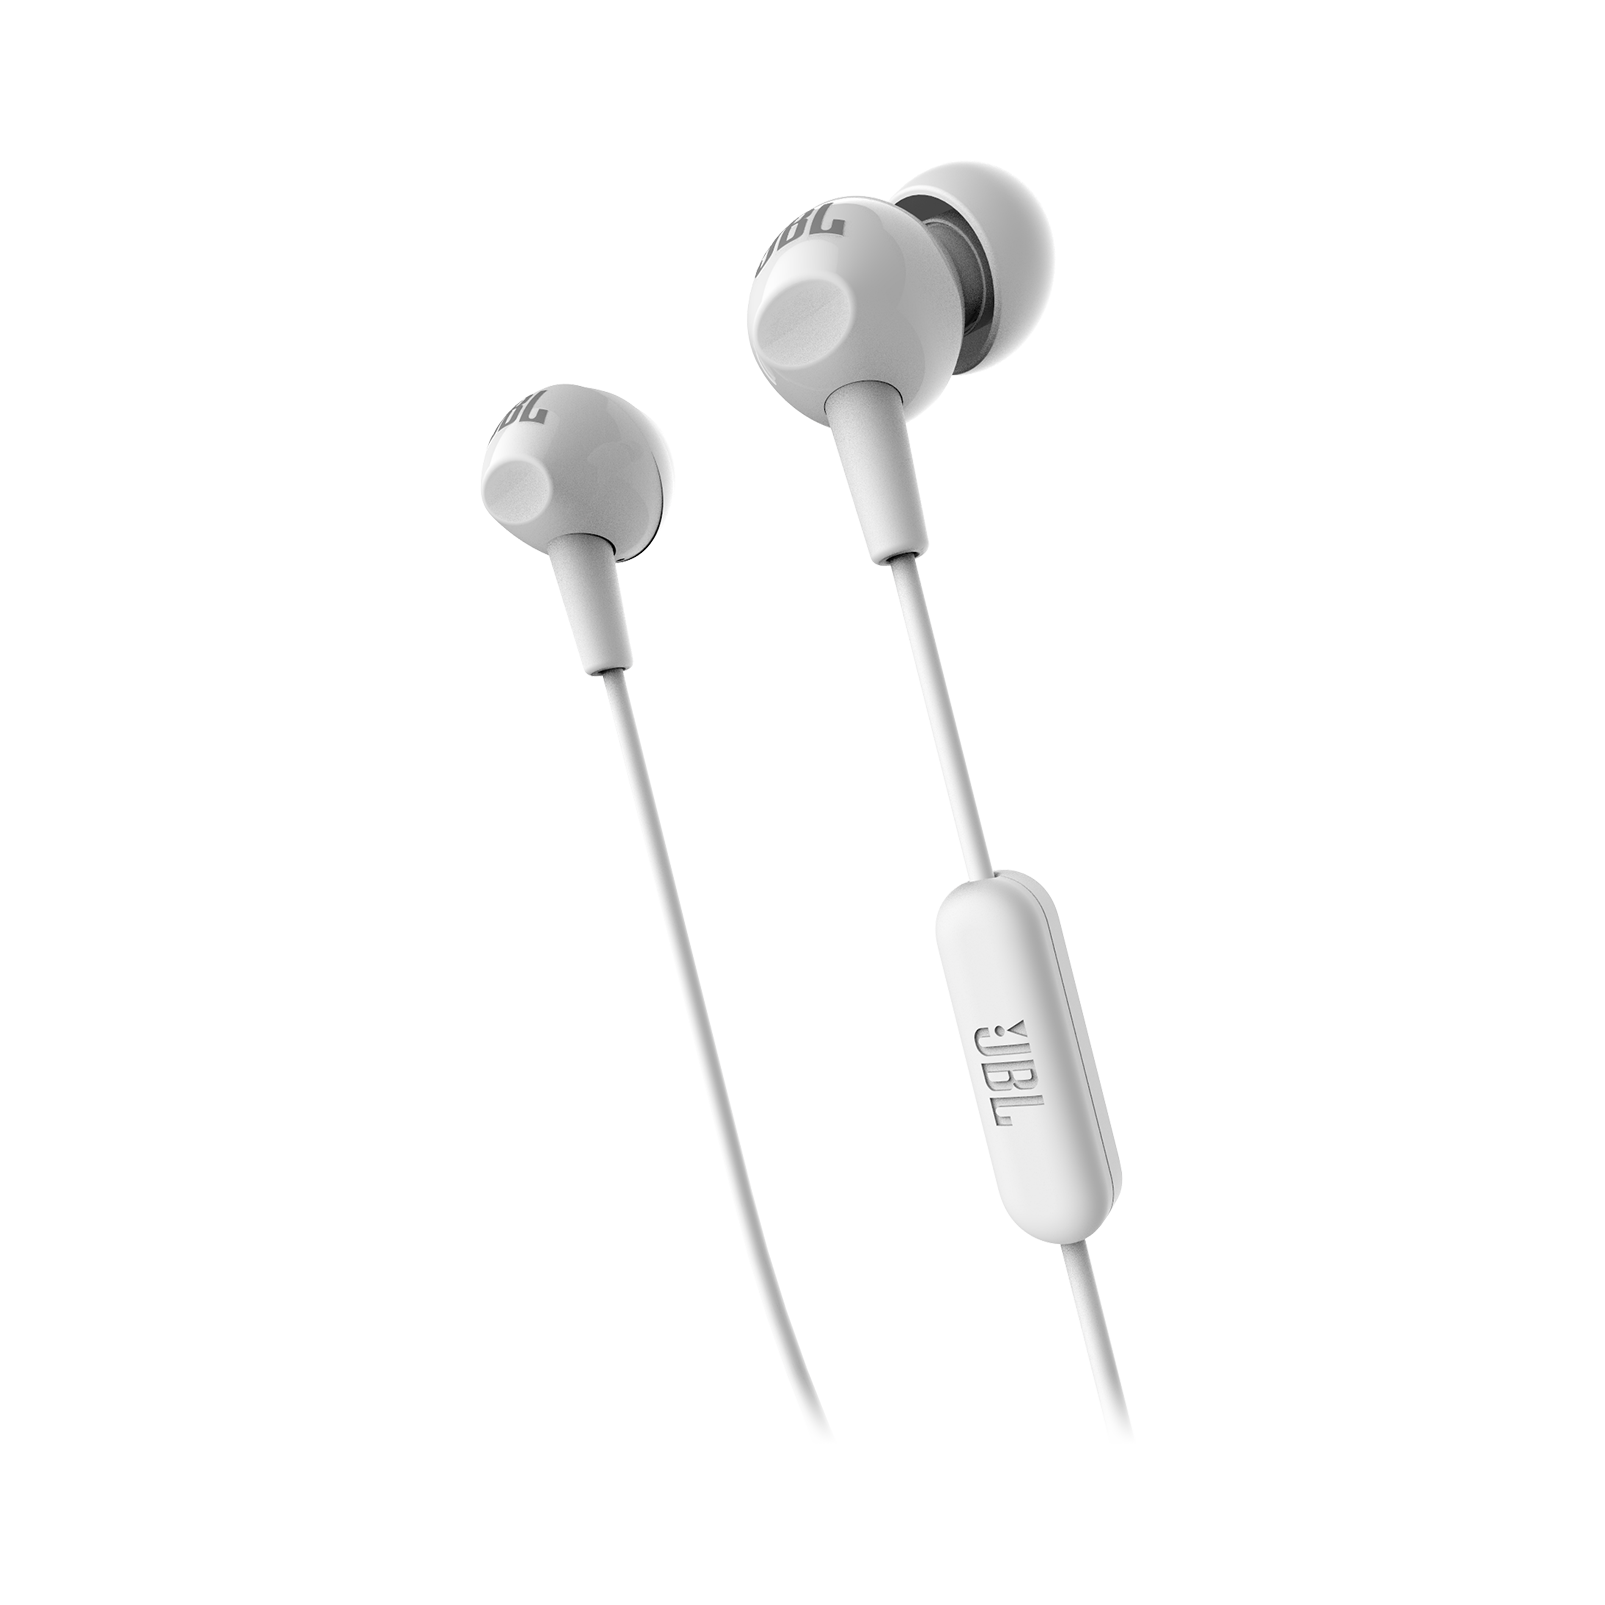 C150SI - White - JBL C150SI In Ear Headphones - Detailshot 1